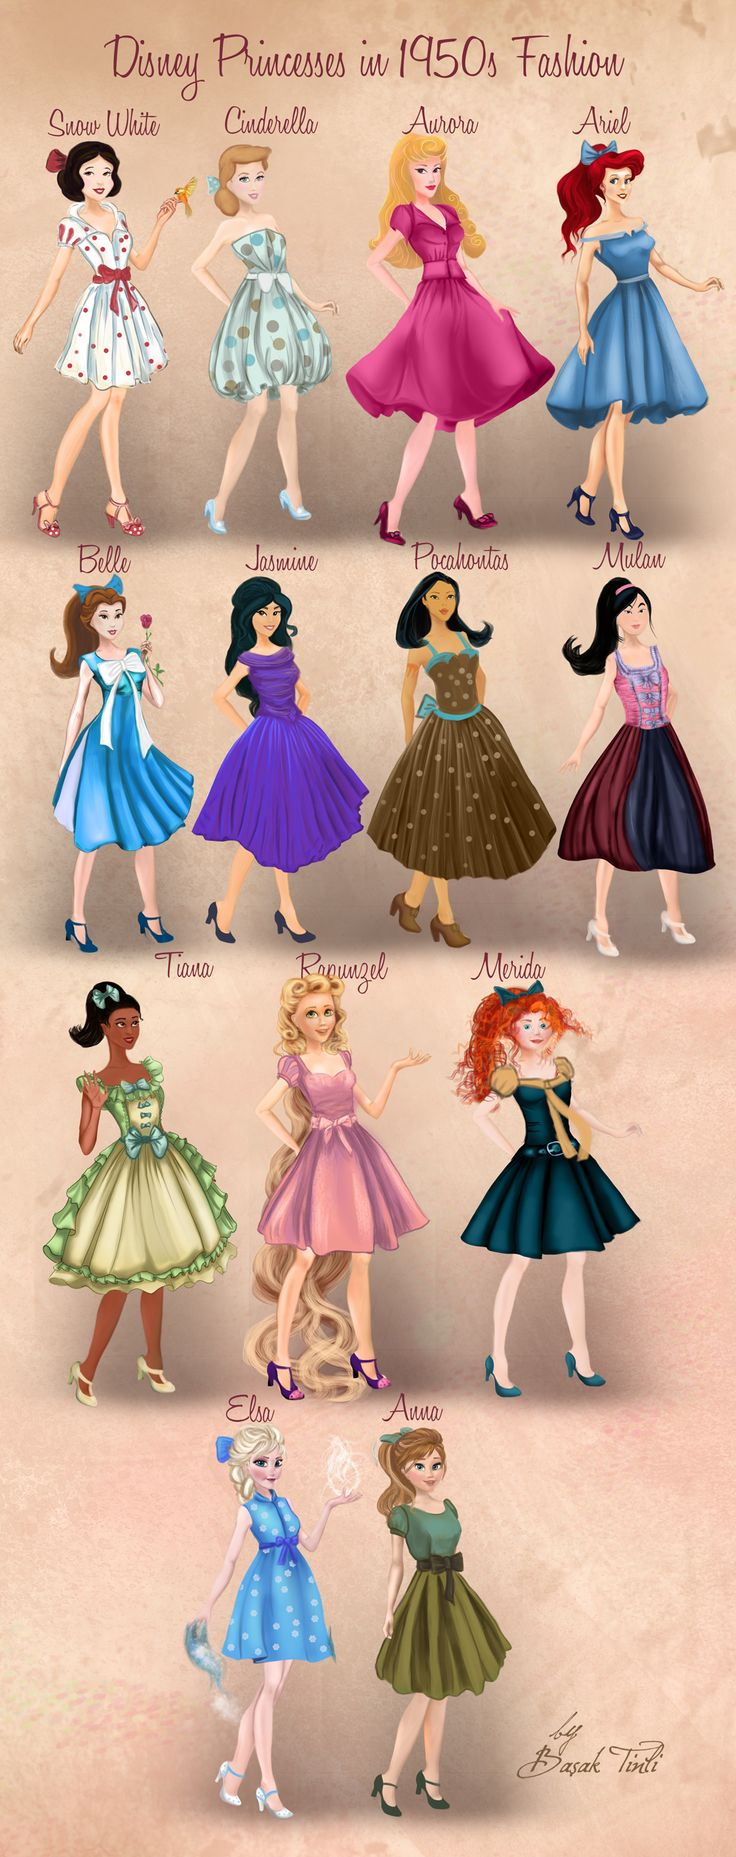 Disney Princesses in 1950s Fashion by Basak Tinli by BasakTinli.deviantart.com on @DeviantArt